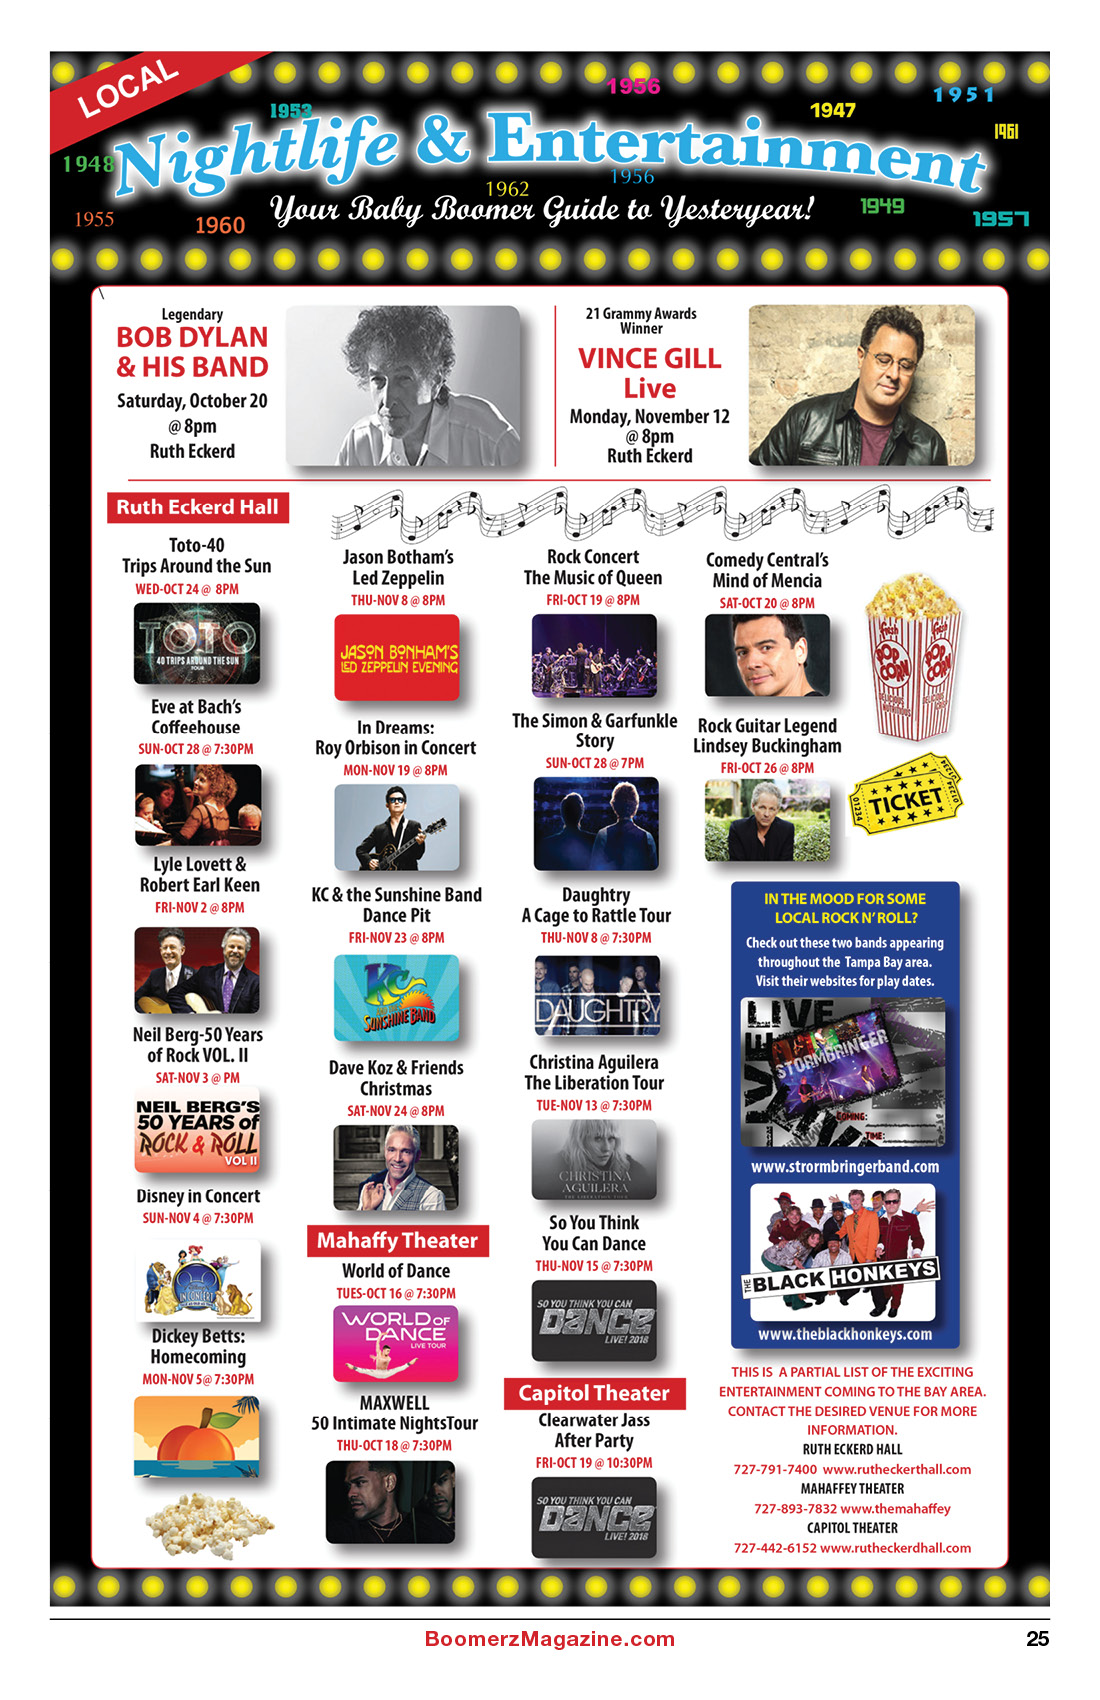 2018 October Boomerz-Magazine Page 25 Add from Ruth-Eckerd-Hall